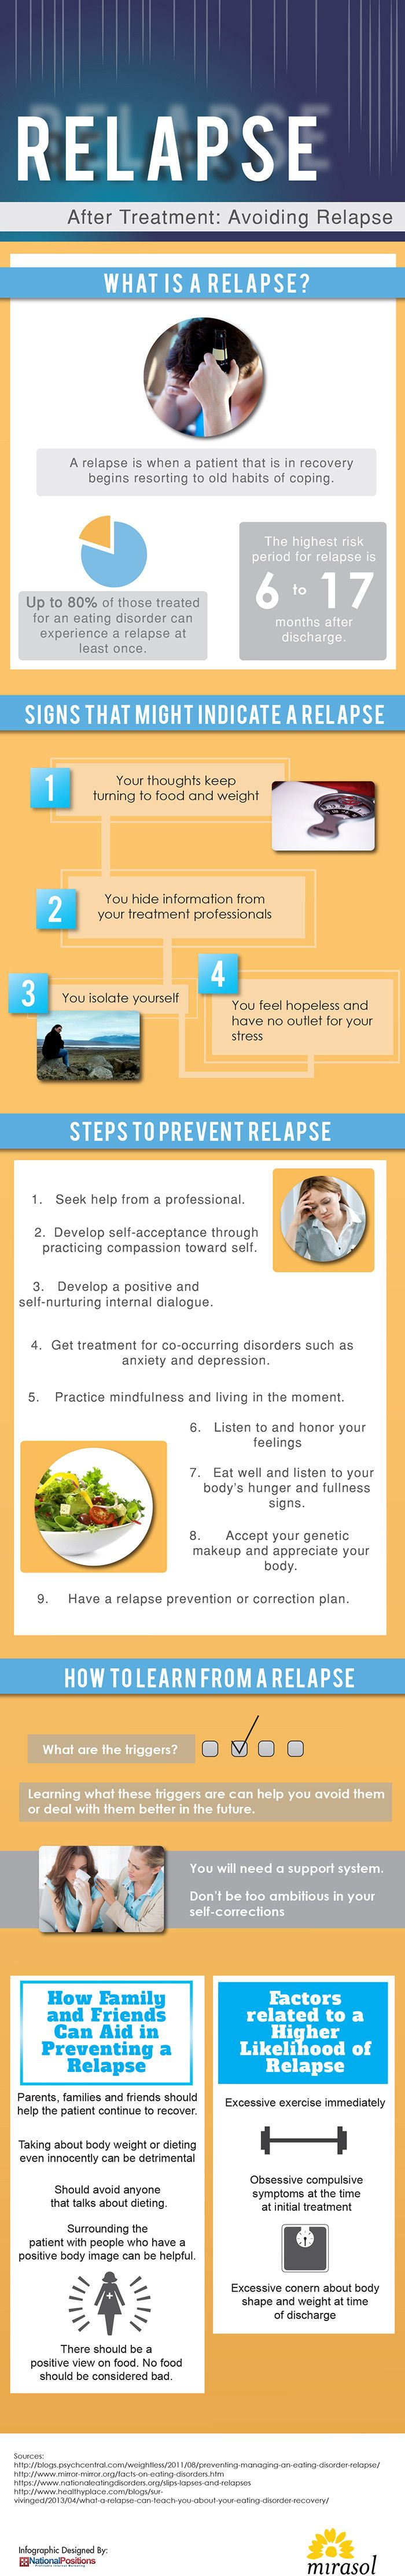 best images about anorexia bulimia eating disorders on recognize signs of an eating disorder relapse infographic